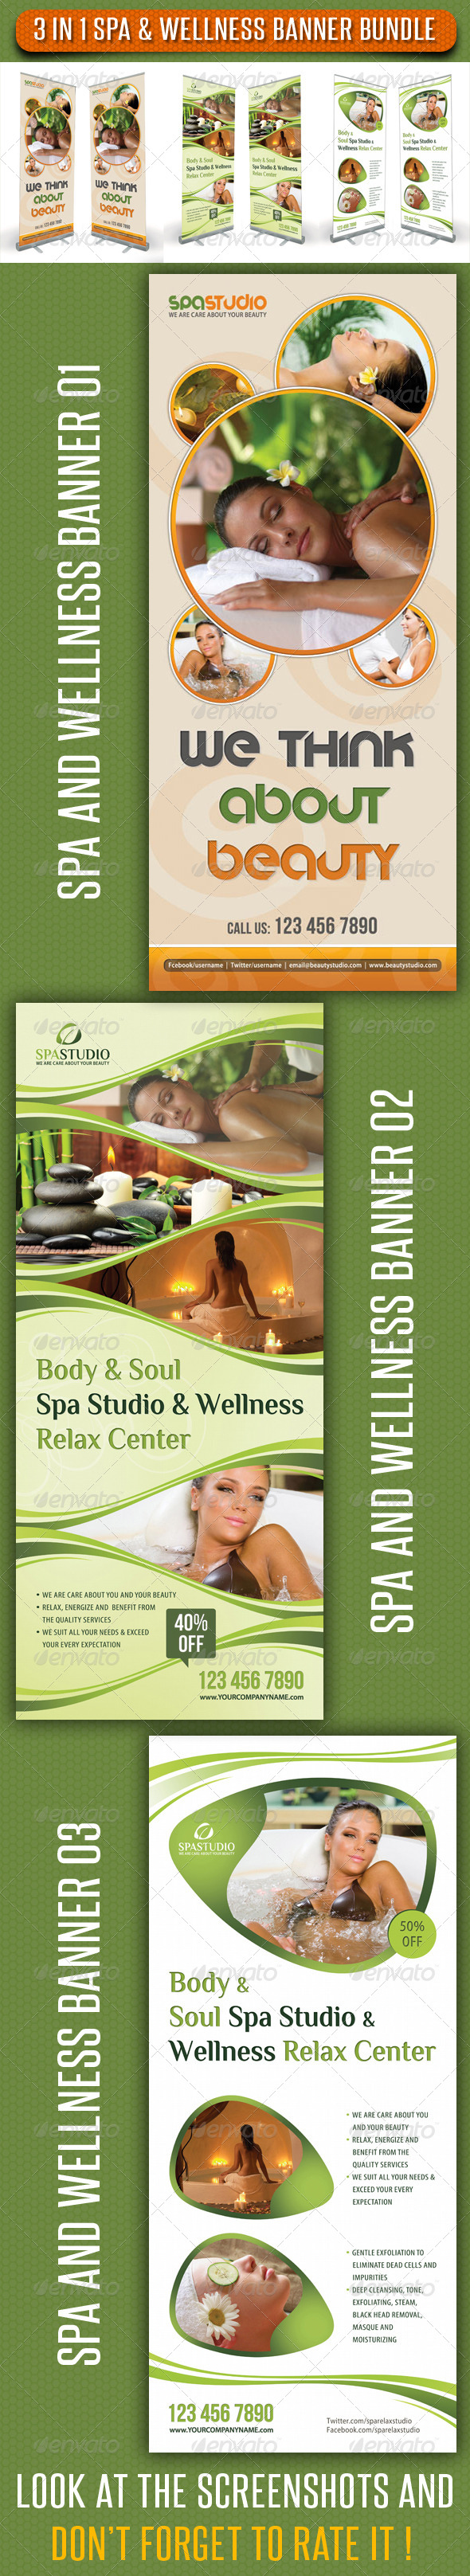 GraphicRiver 3 in 1 Spa Wellness Banner Bundle 01 6781889